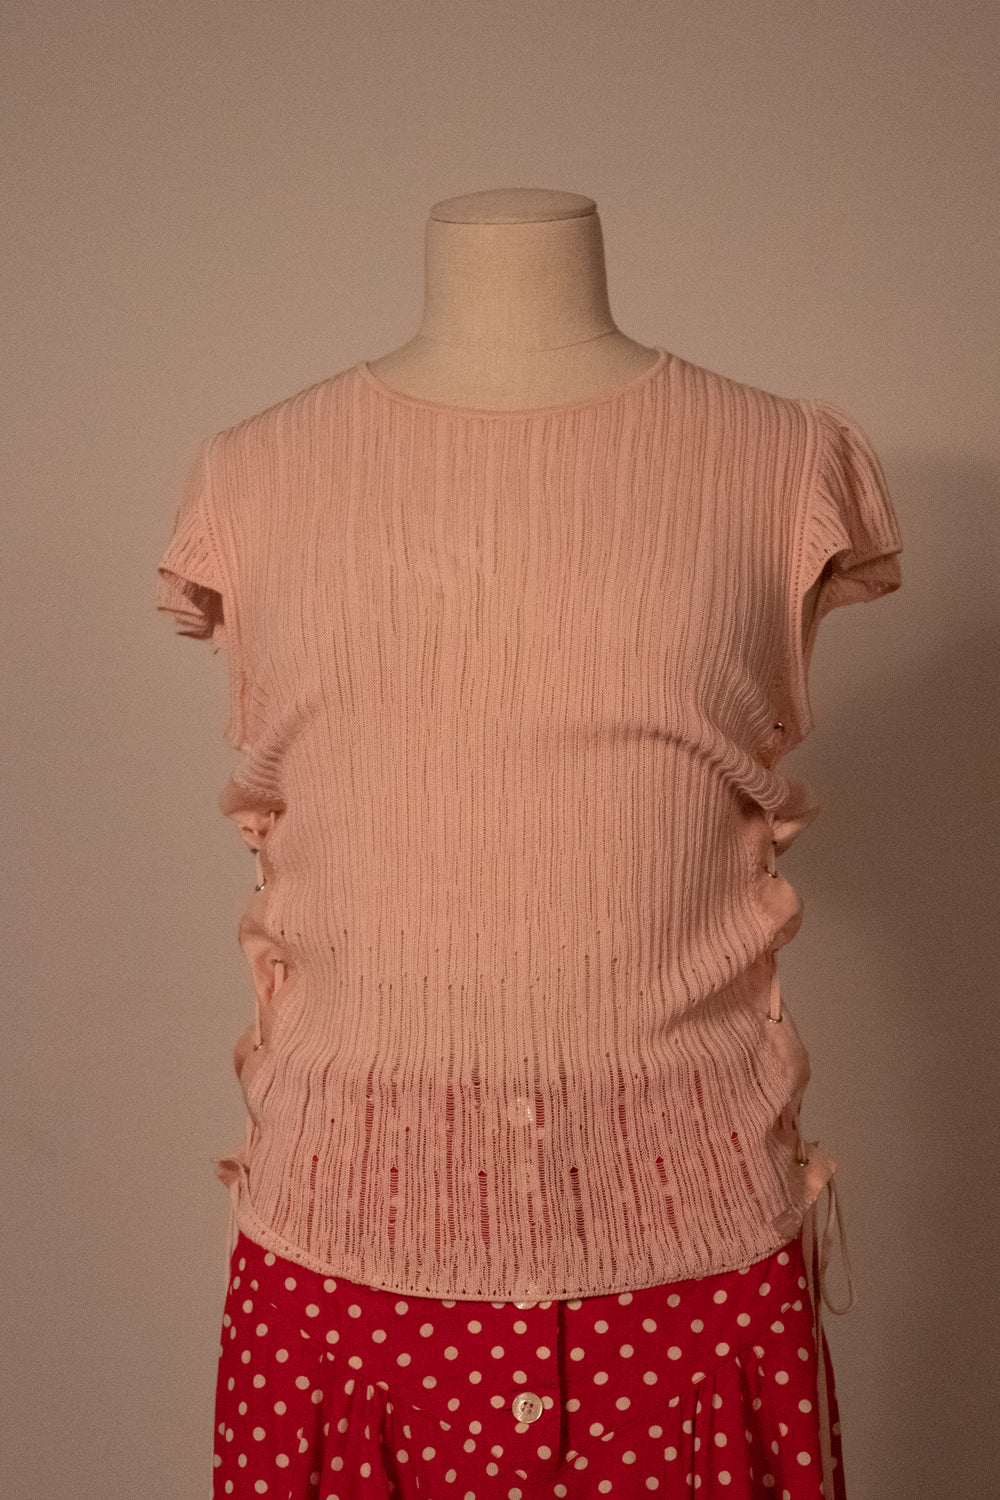 Chanel pink cotton blend knit top